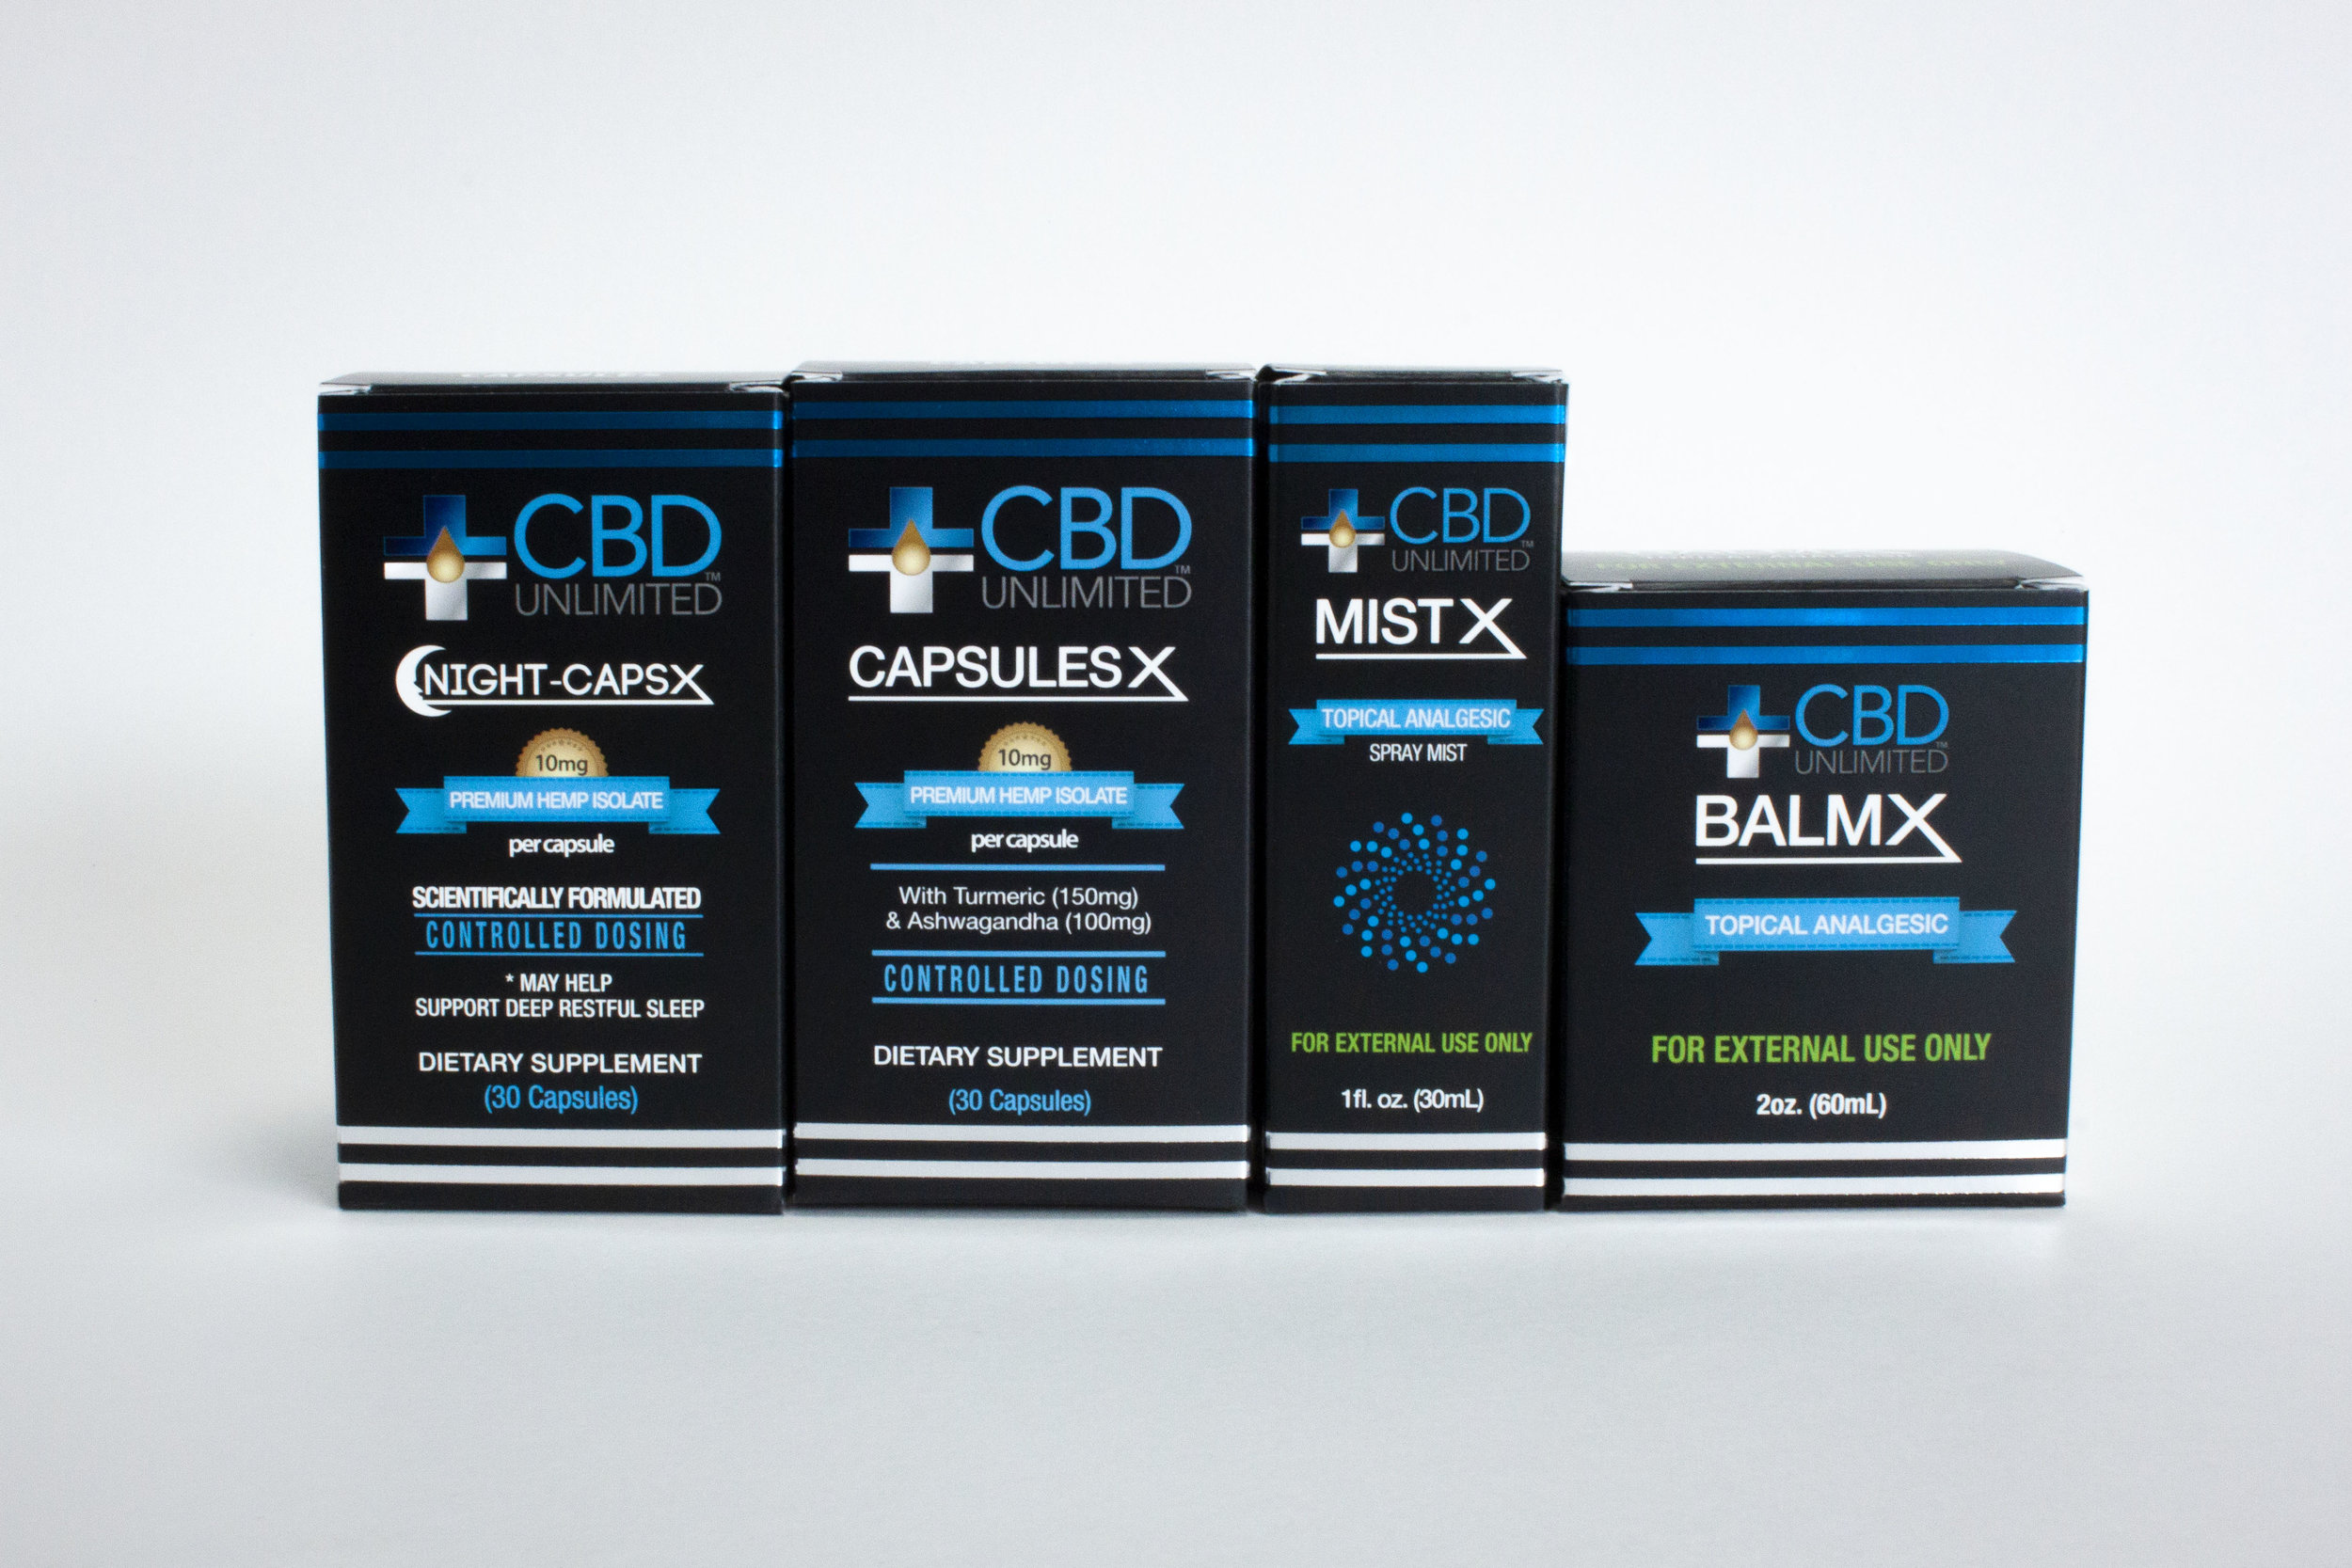 CBD Unlimited Packaging